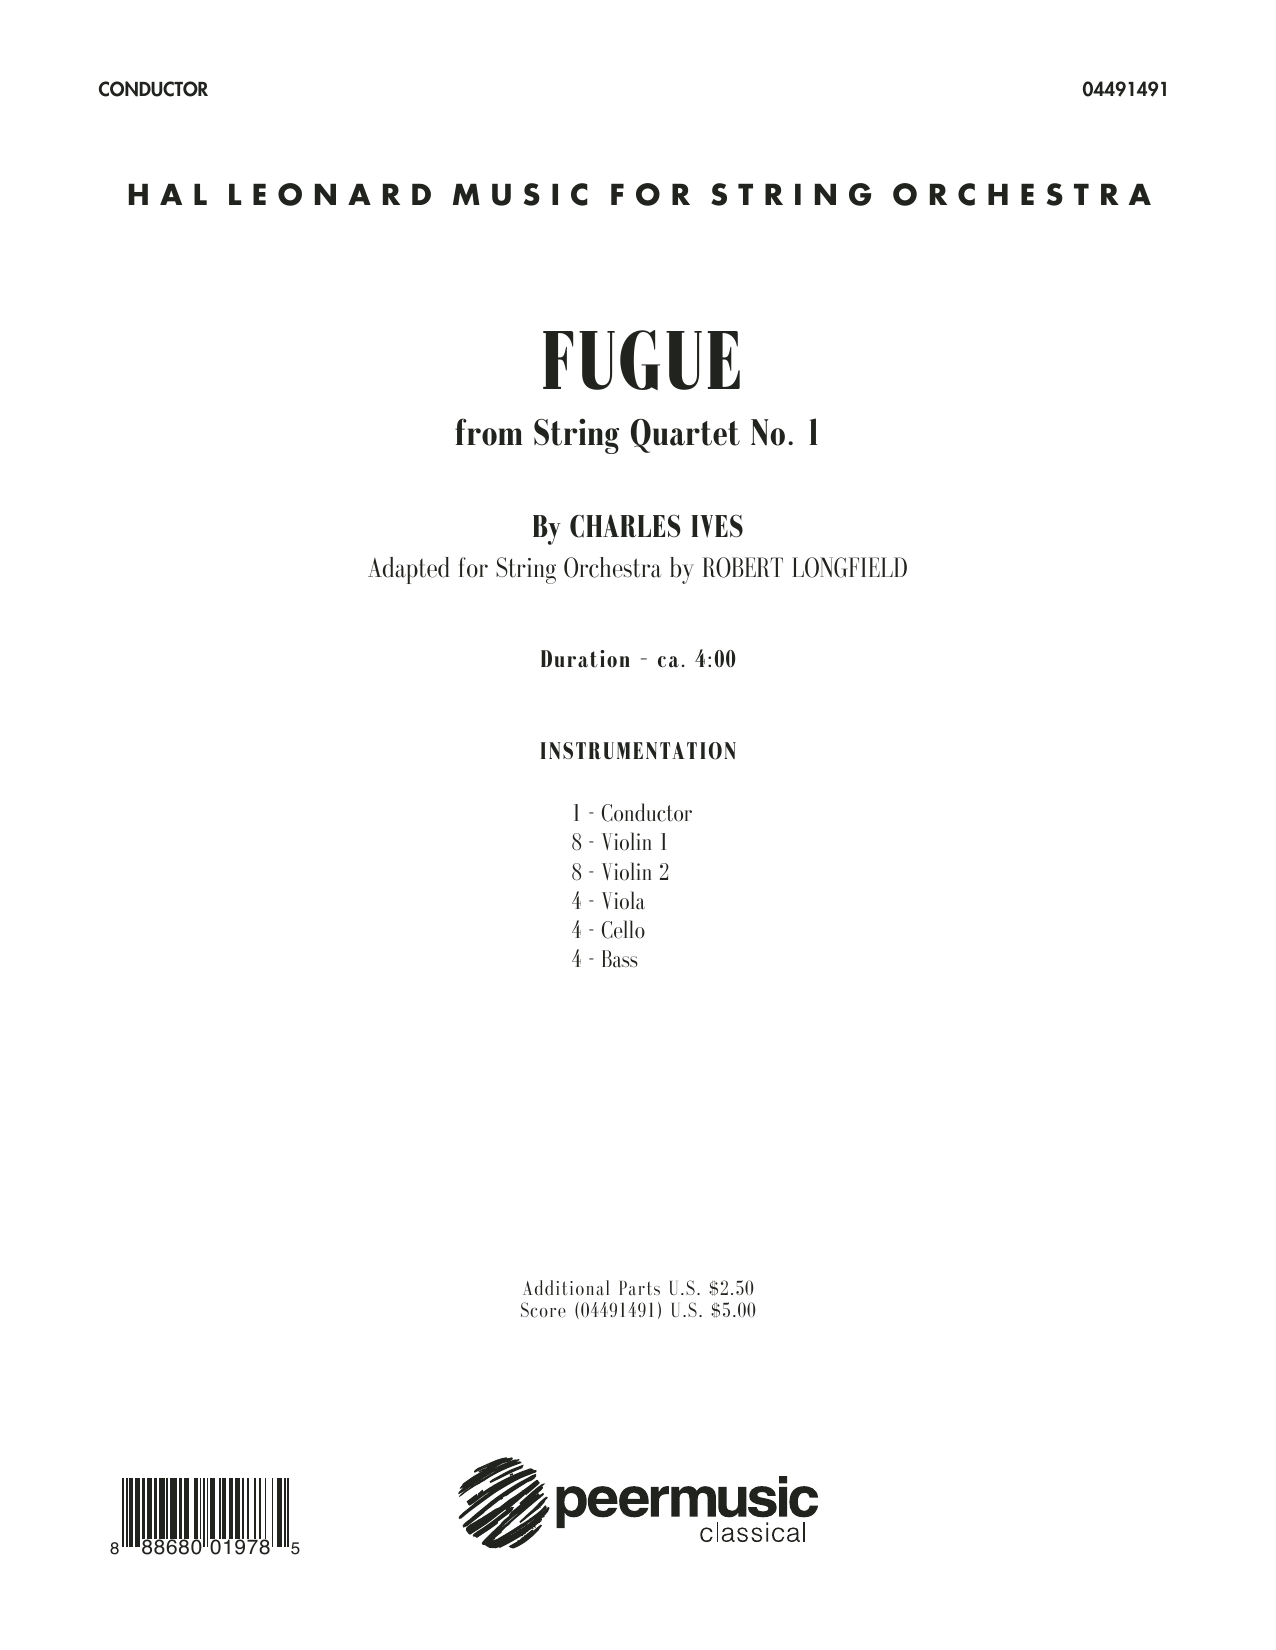 Robert Longfield Fugue from String Quartet No. 1 - Conductor Score (Full Score) sheet music notes and chords. Download Printable PDF.